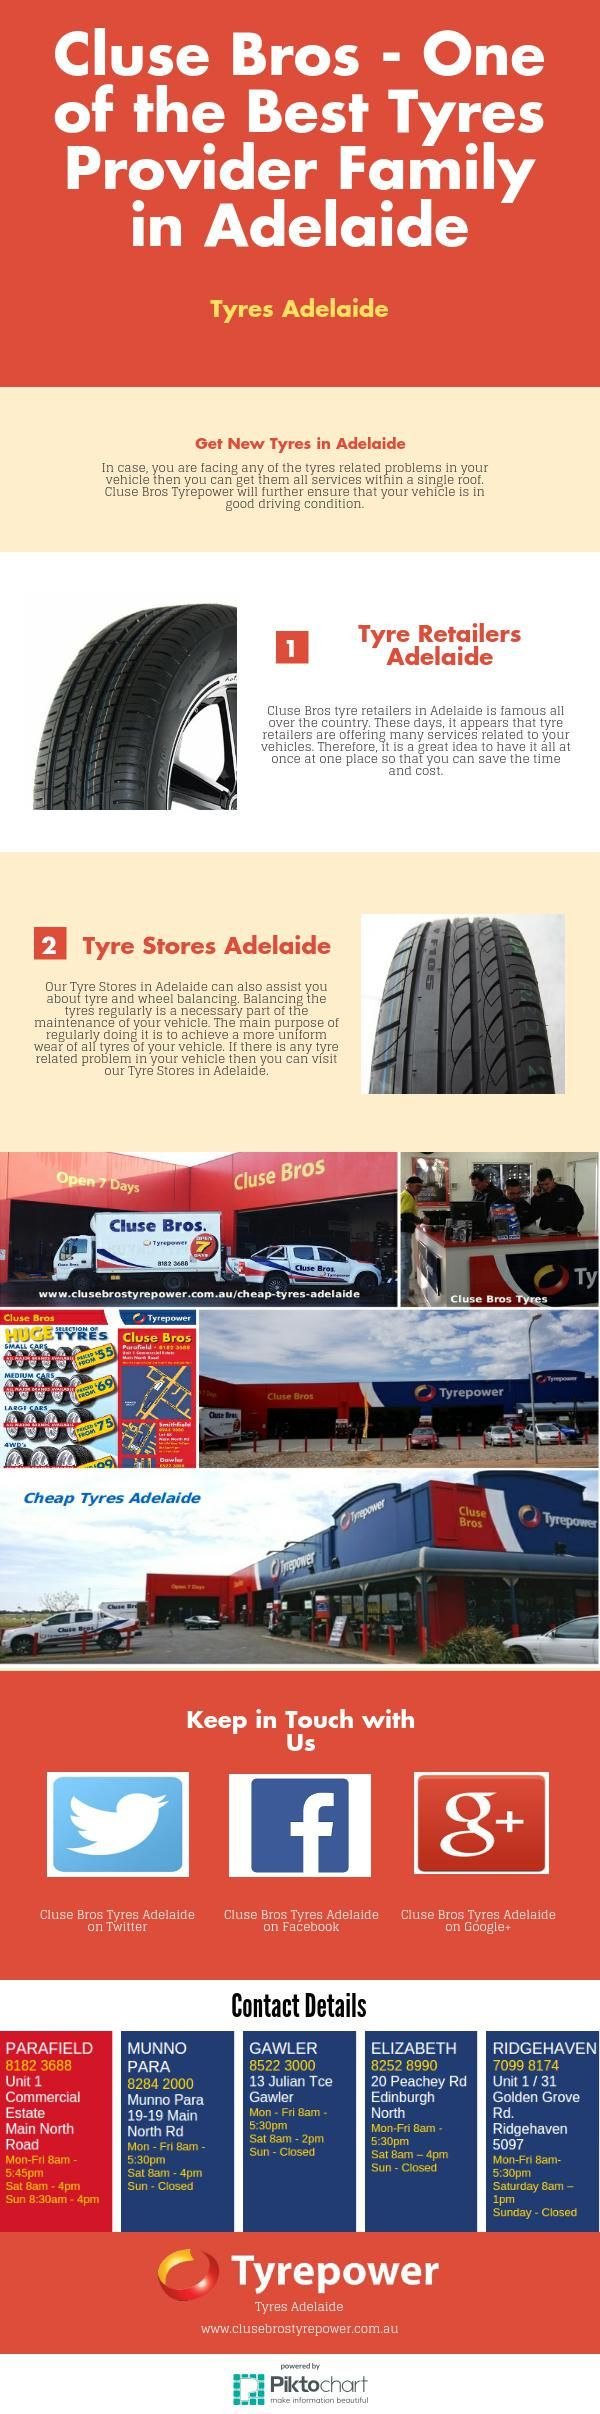 Cluse Bros-One of the Best Tyres Provider Family in Adelaide